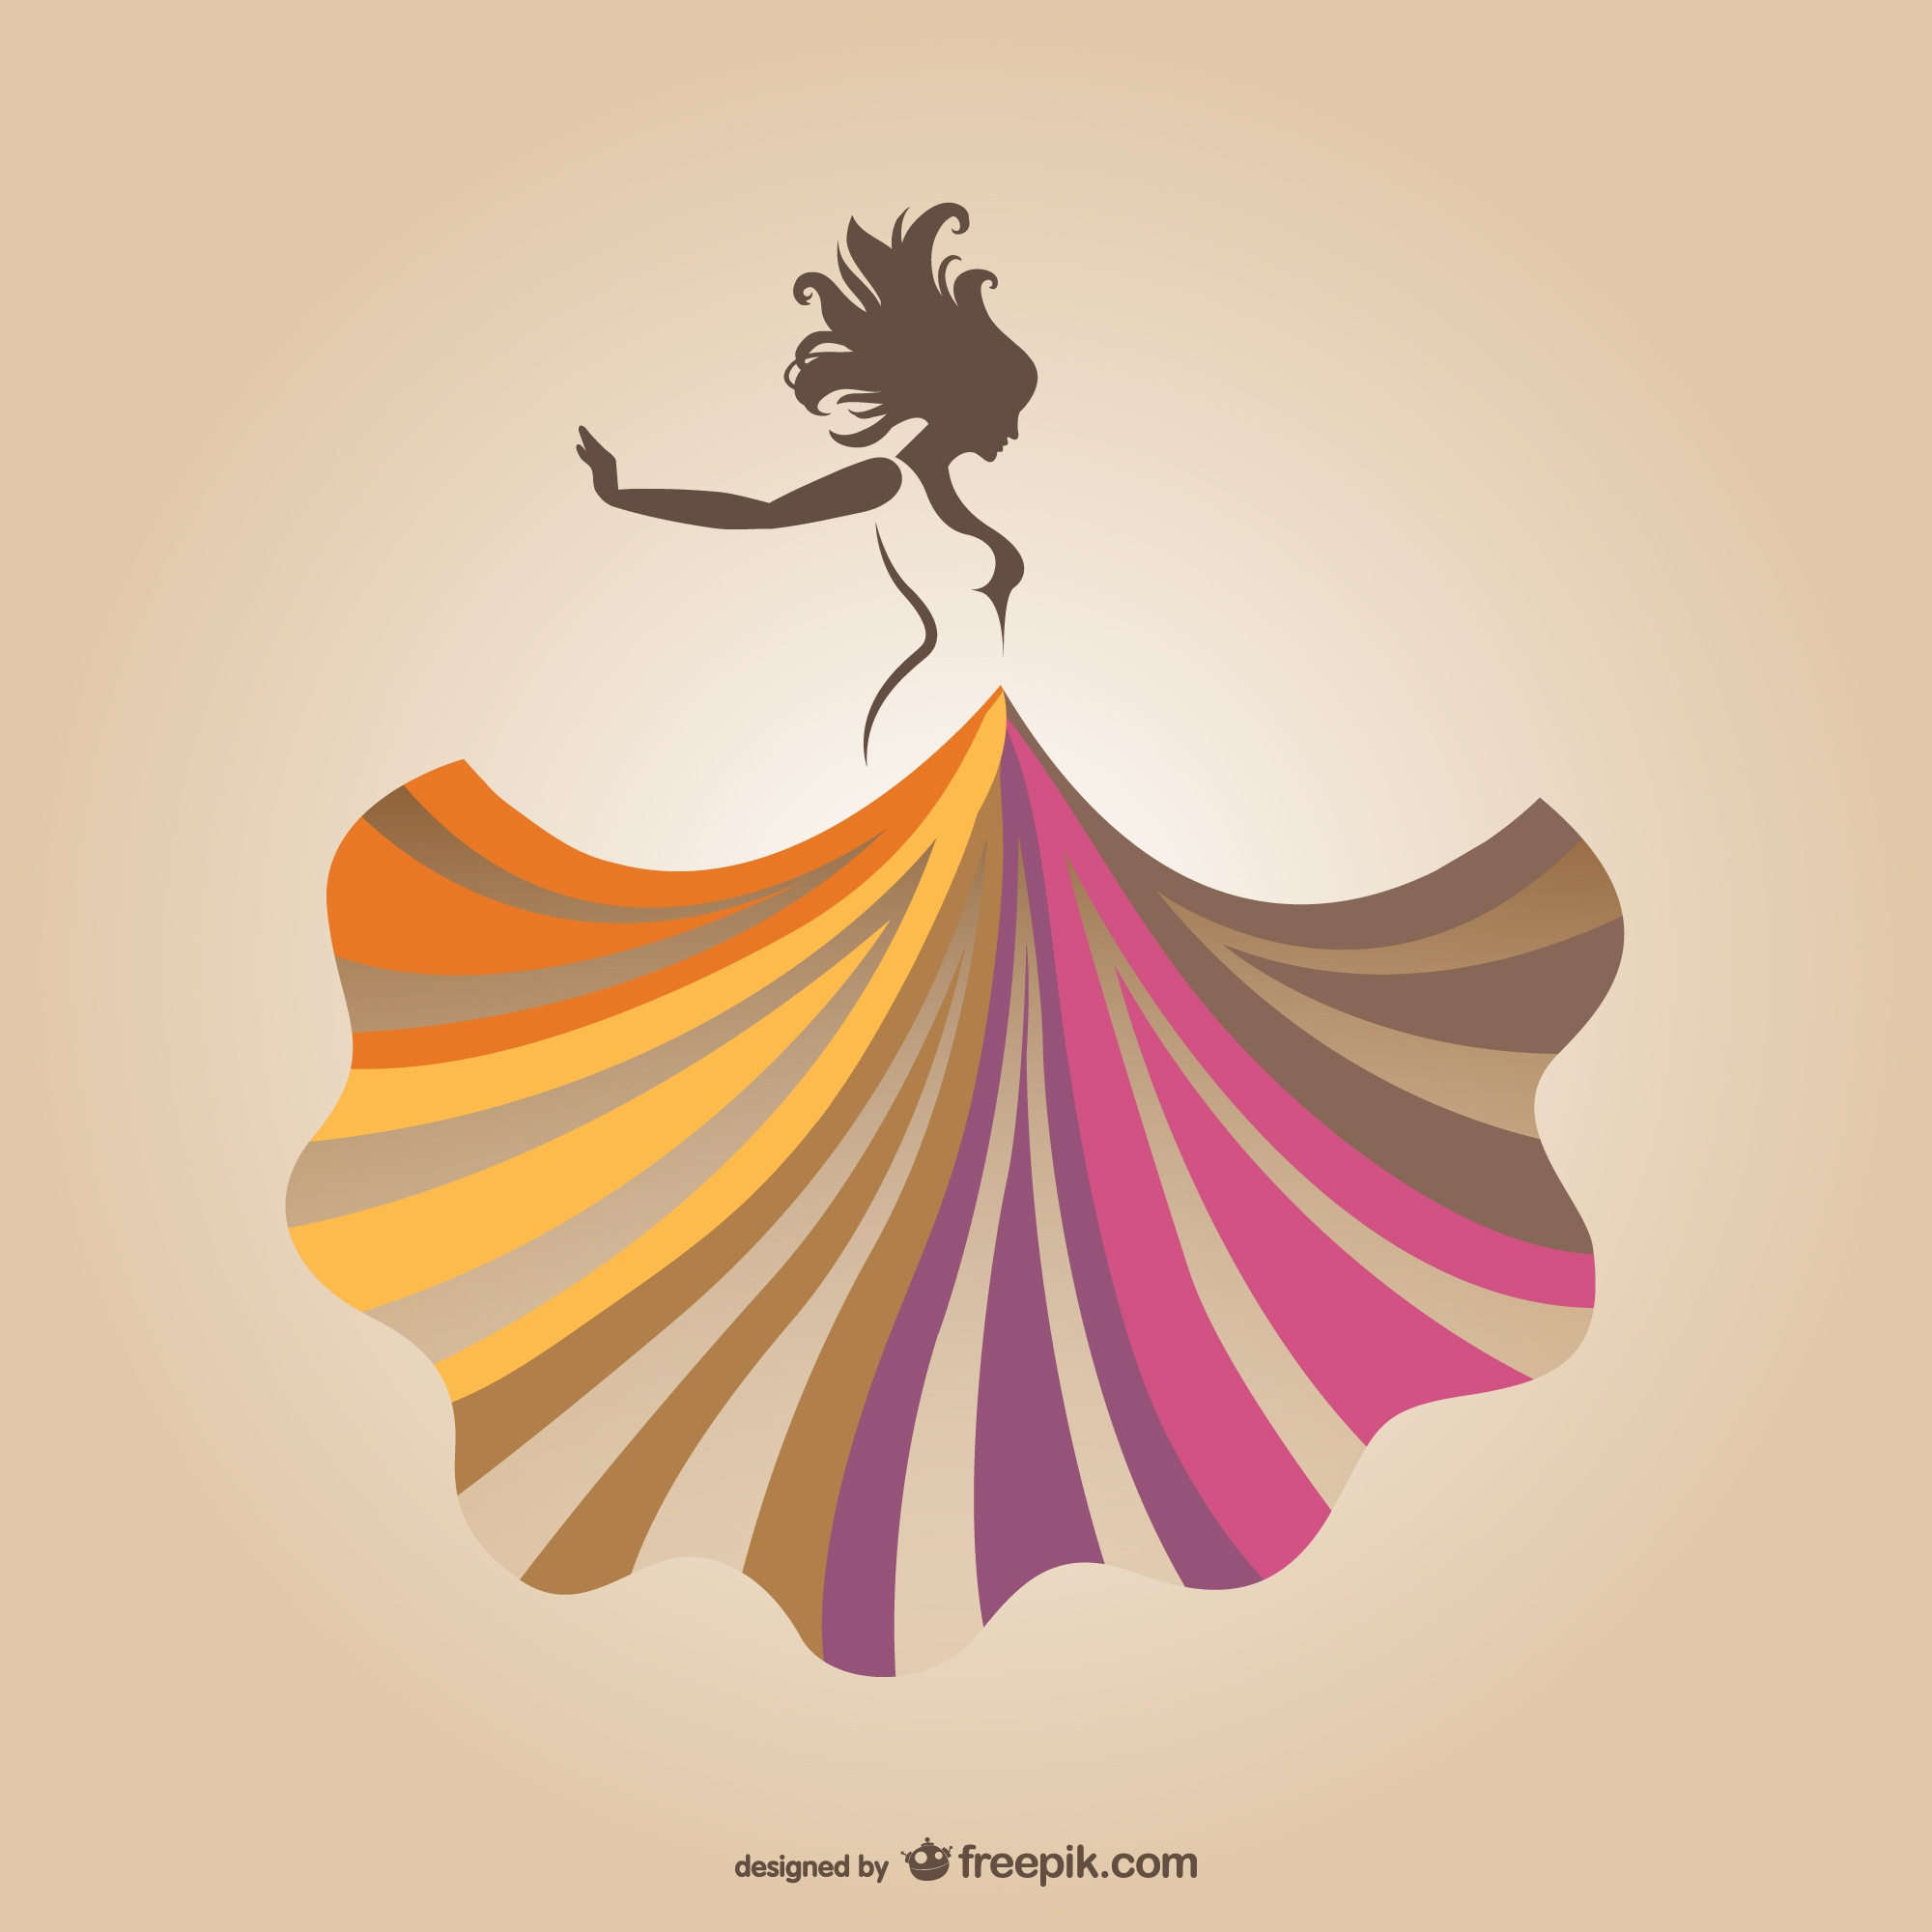 Dancing woman with colorful skirt